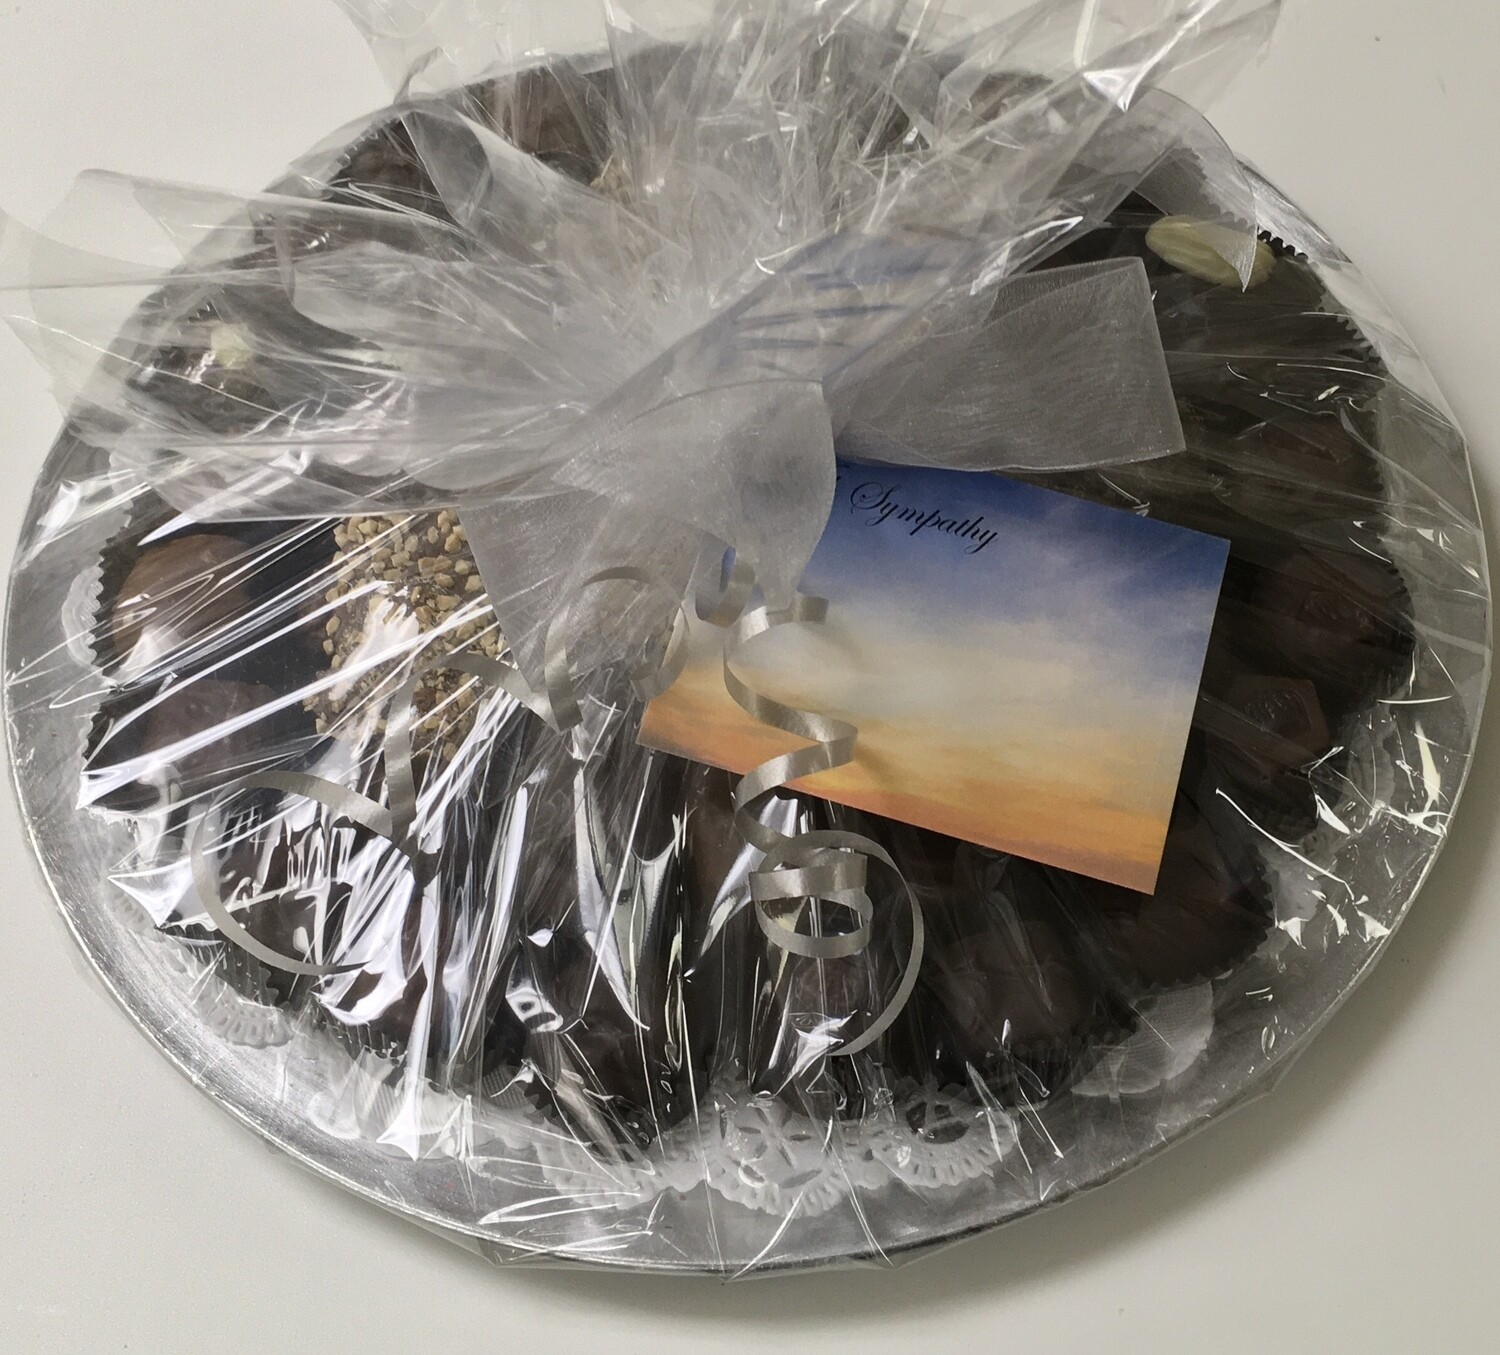 F - Sympathy Tray.  The Best of Carella's Chocolates.  PICK UP OR DELIVERY ONLY IN MERCER COUNTY, NJ